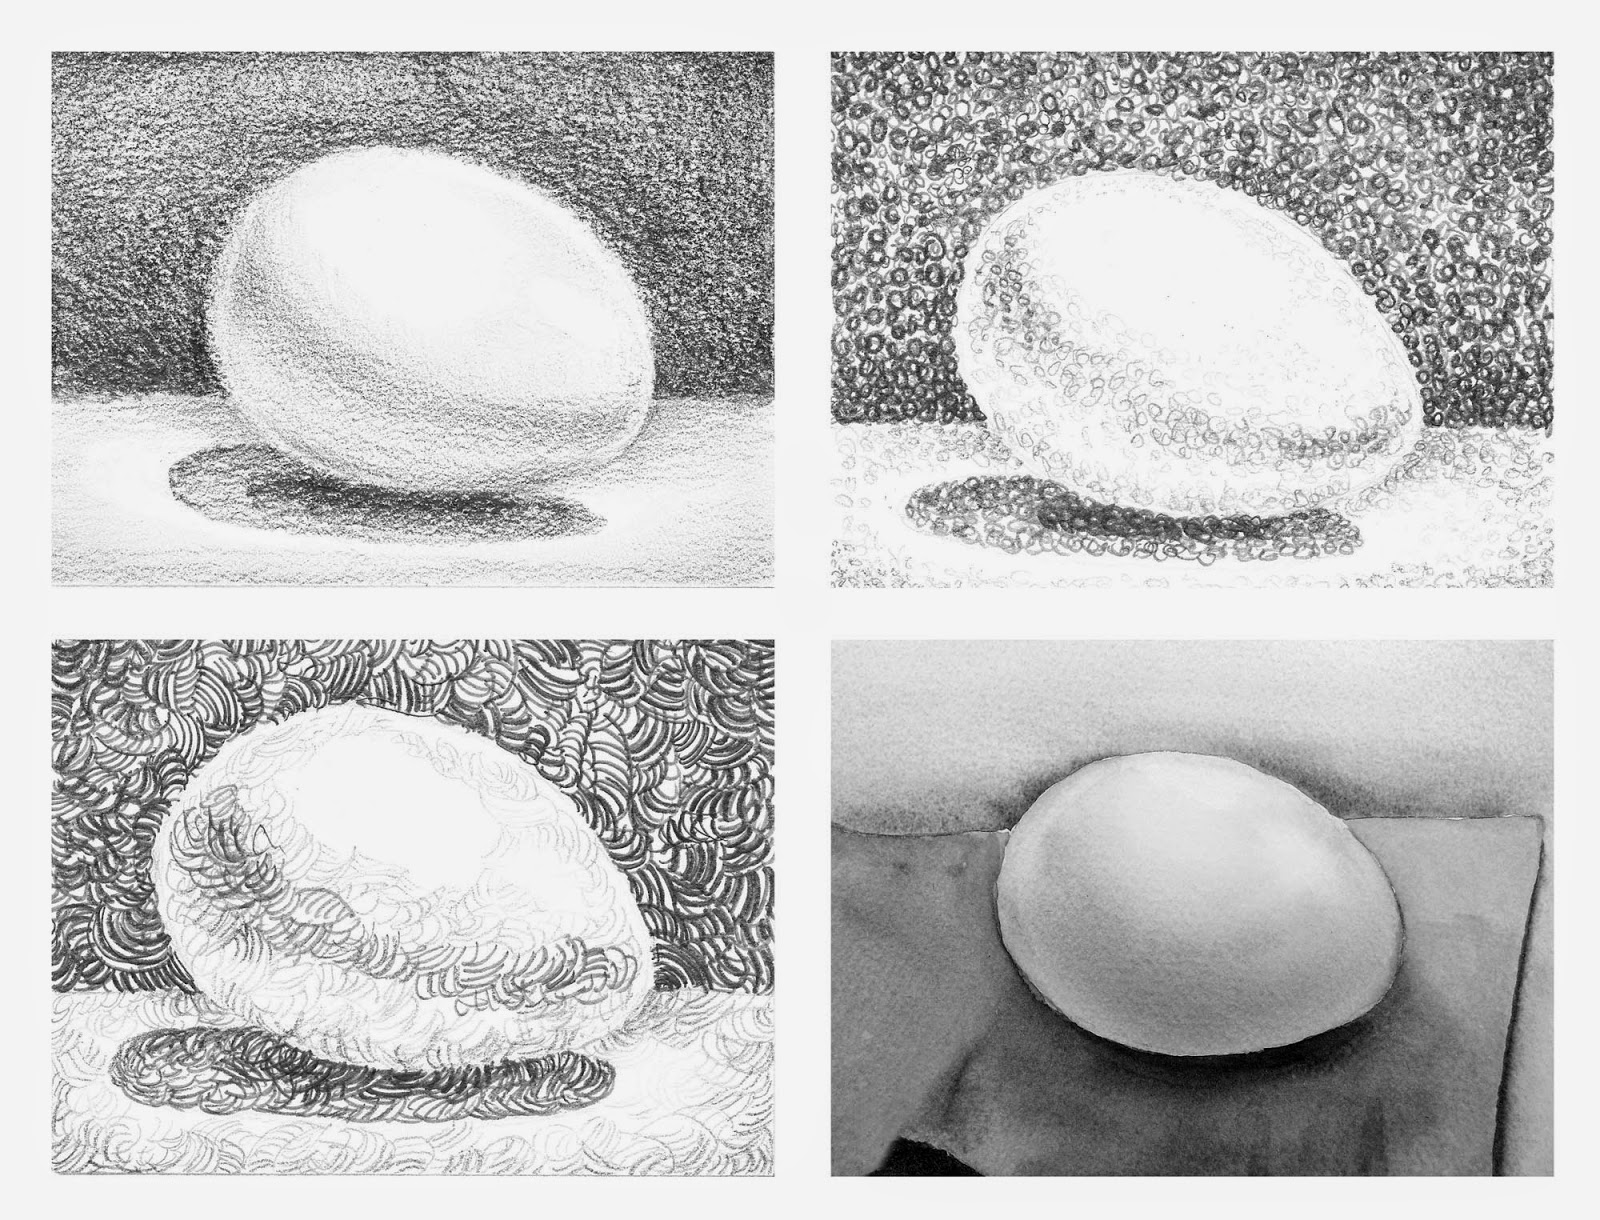 project how to draw and paint an egg art history essays and art history essays and art gifts from irina